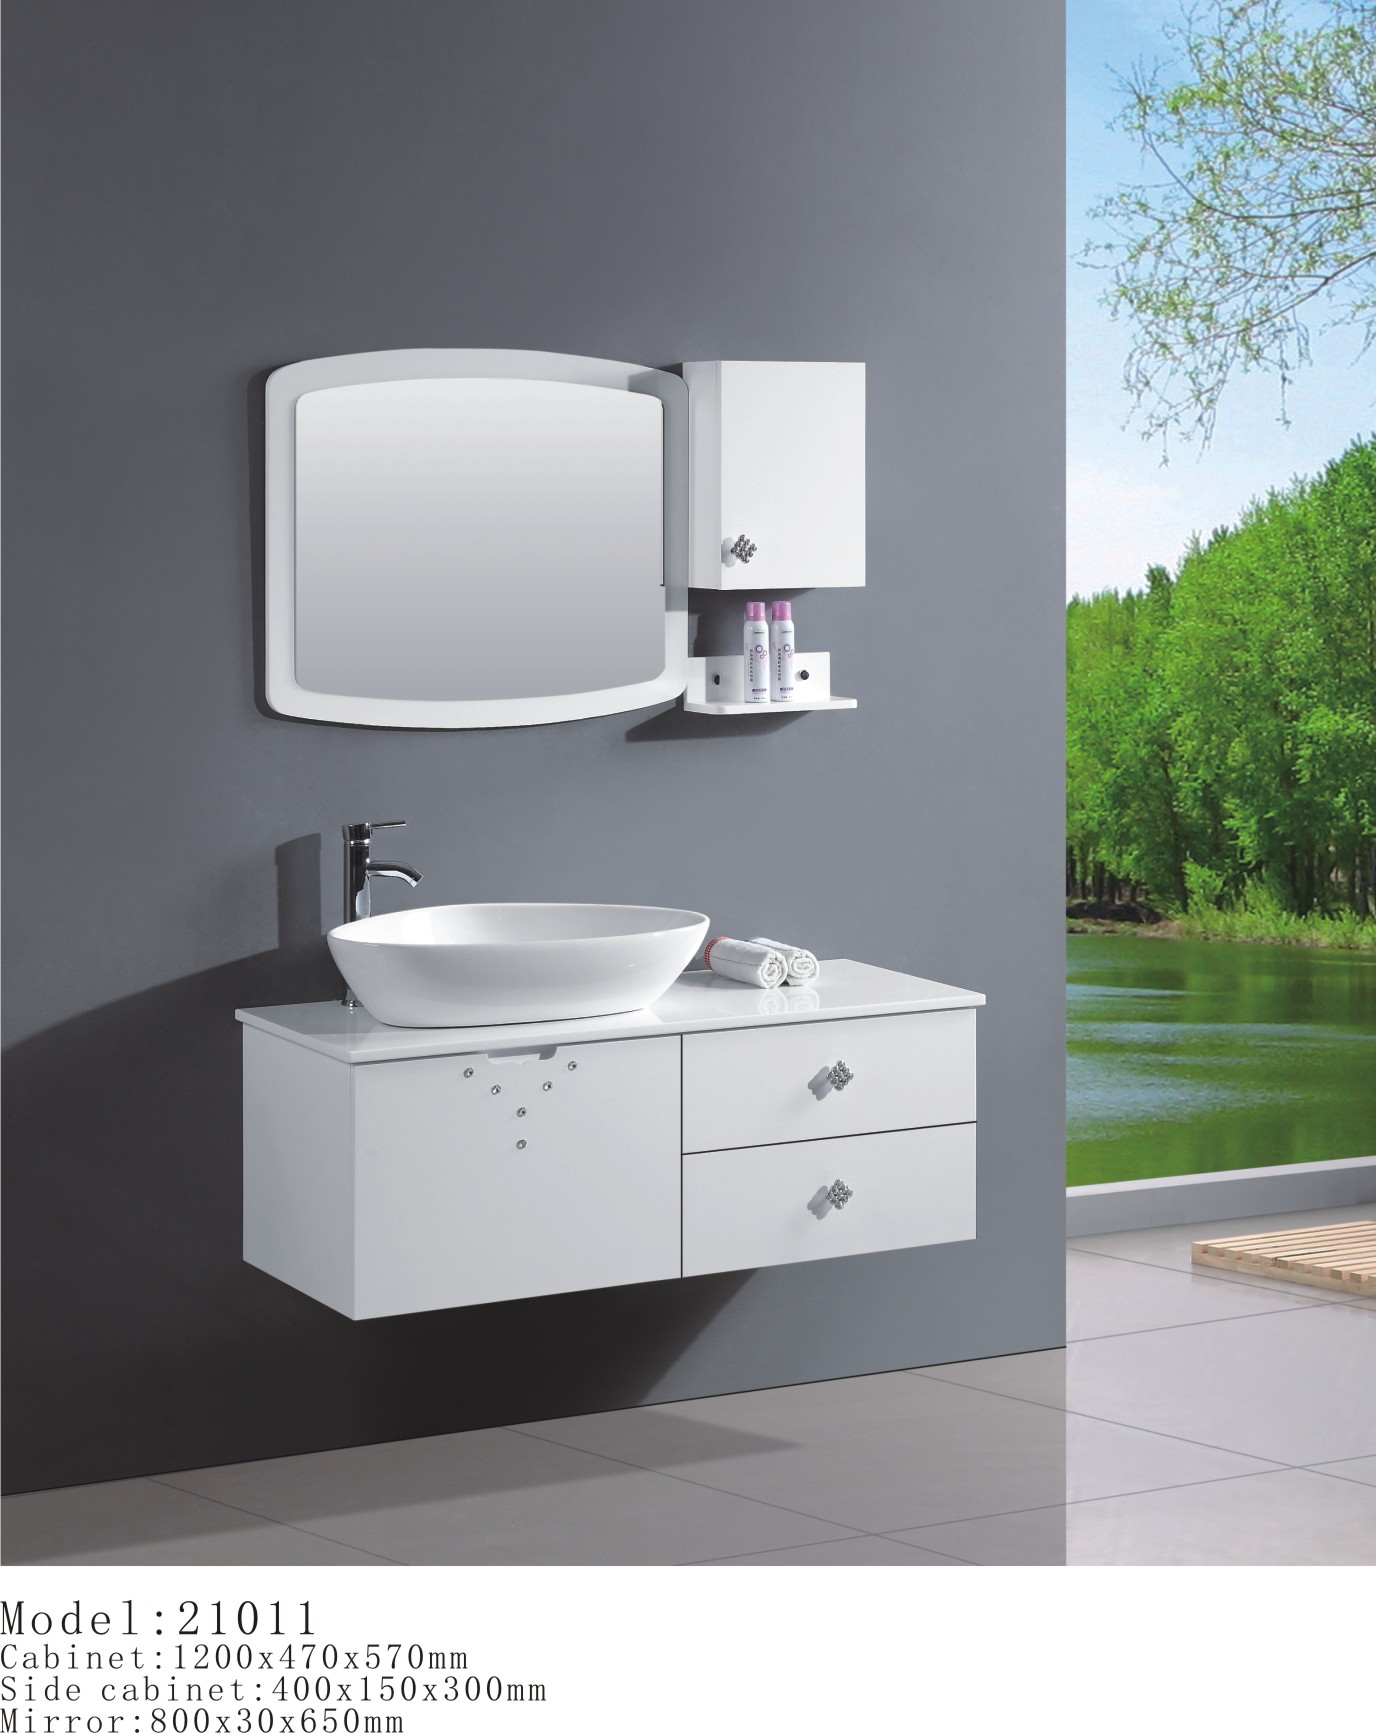 Bathroom vanity designs - Photo Gallery Of The Japanese Bathroom Vanity Design